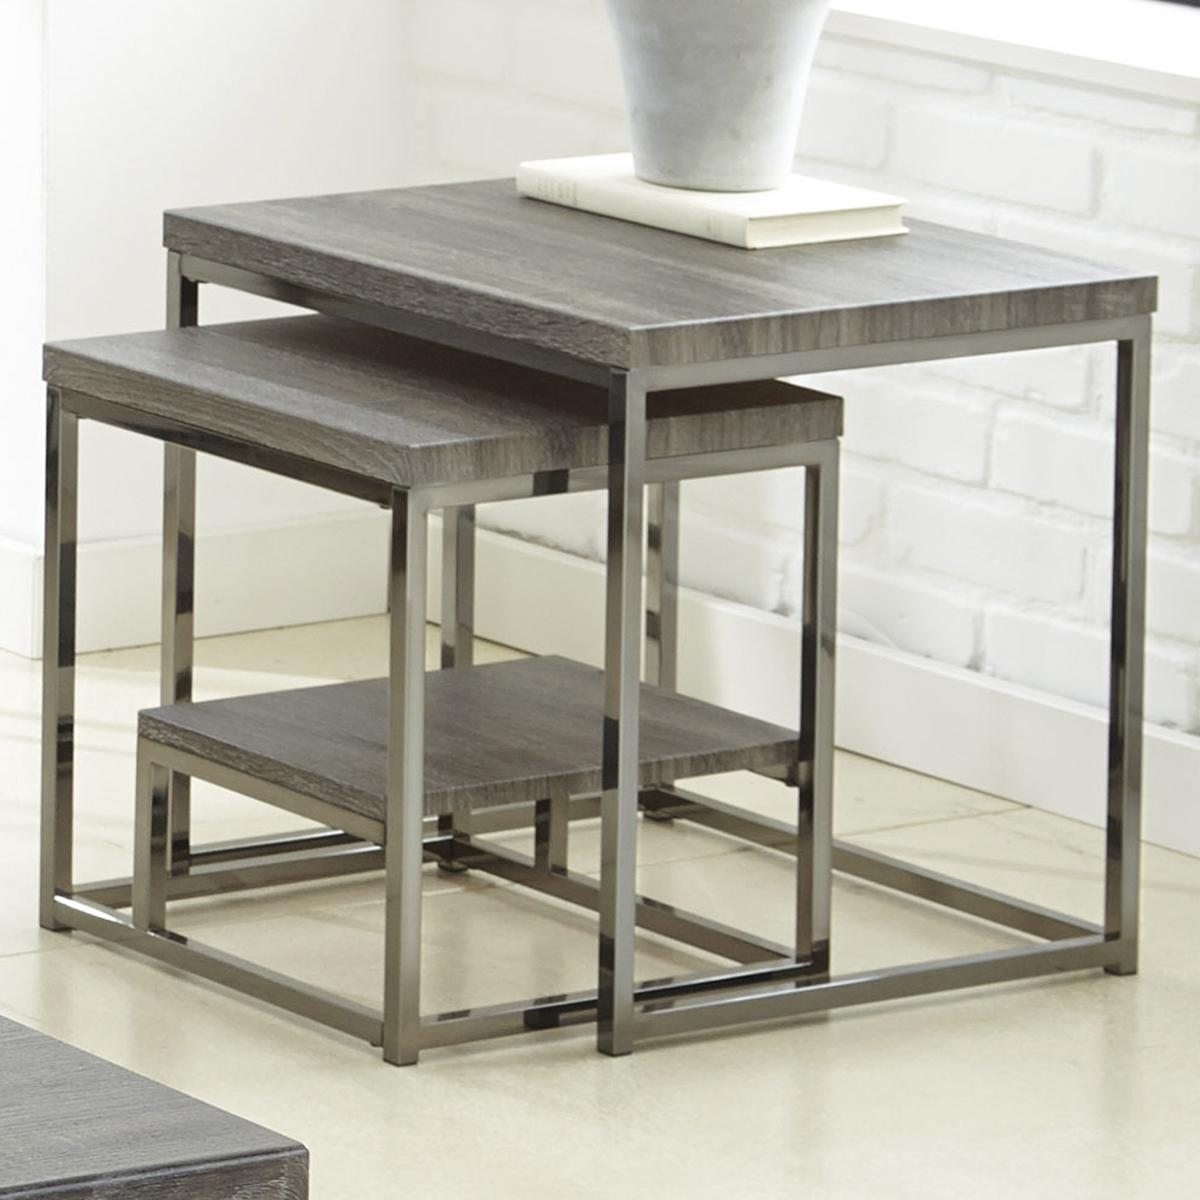 accent furniture mart table bunching and nesting tables glass top green tiffany lamp shade grey occasional chair concrete side patio chairs wicker storage trunk metal frame end